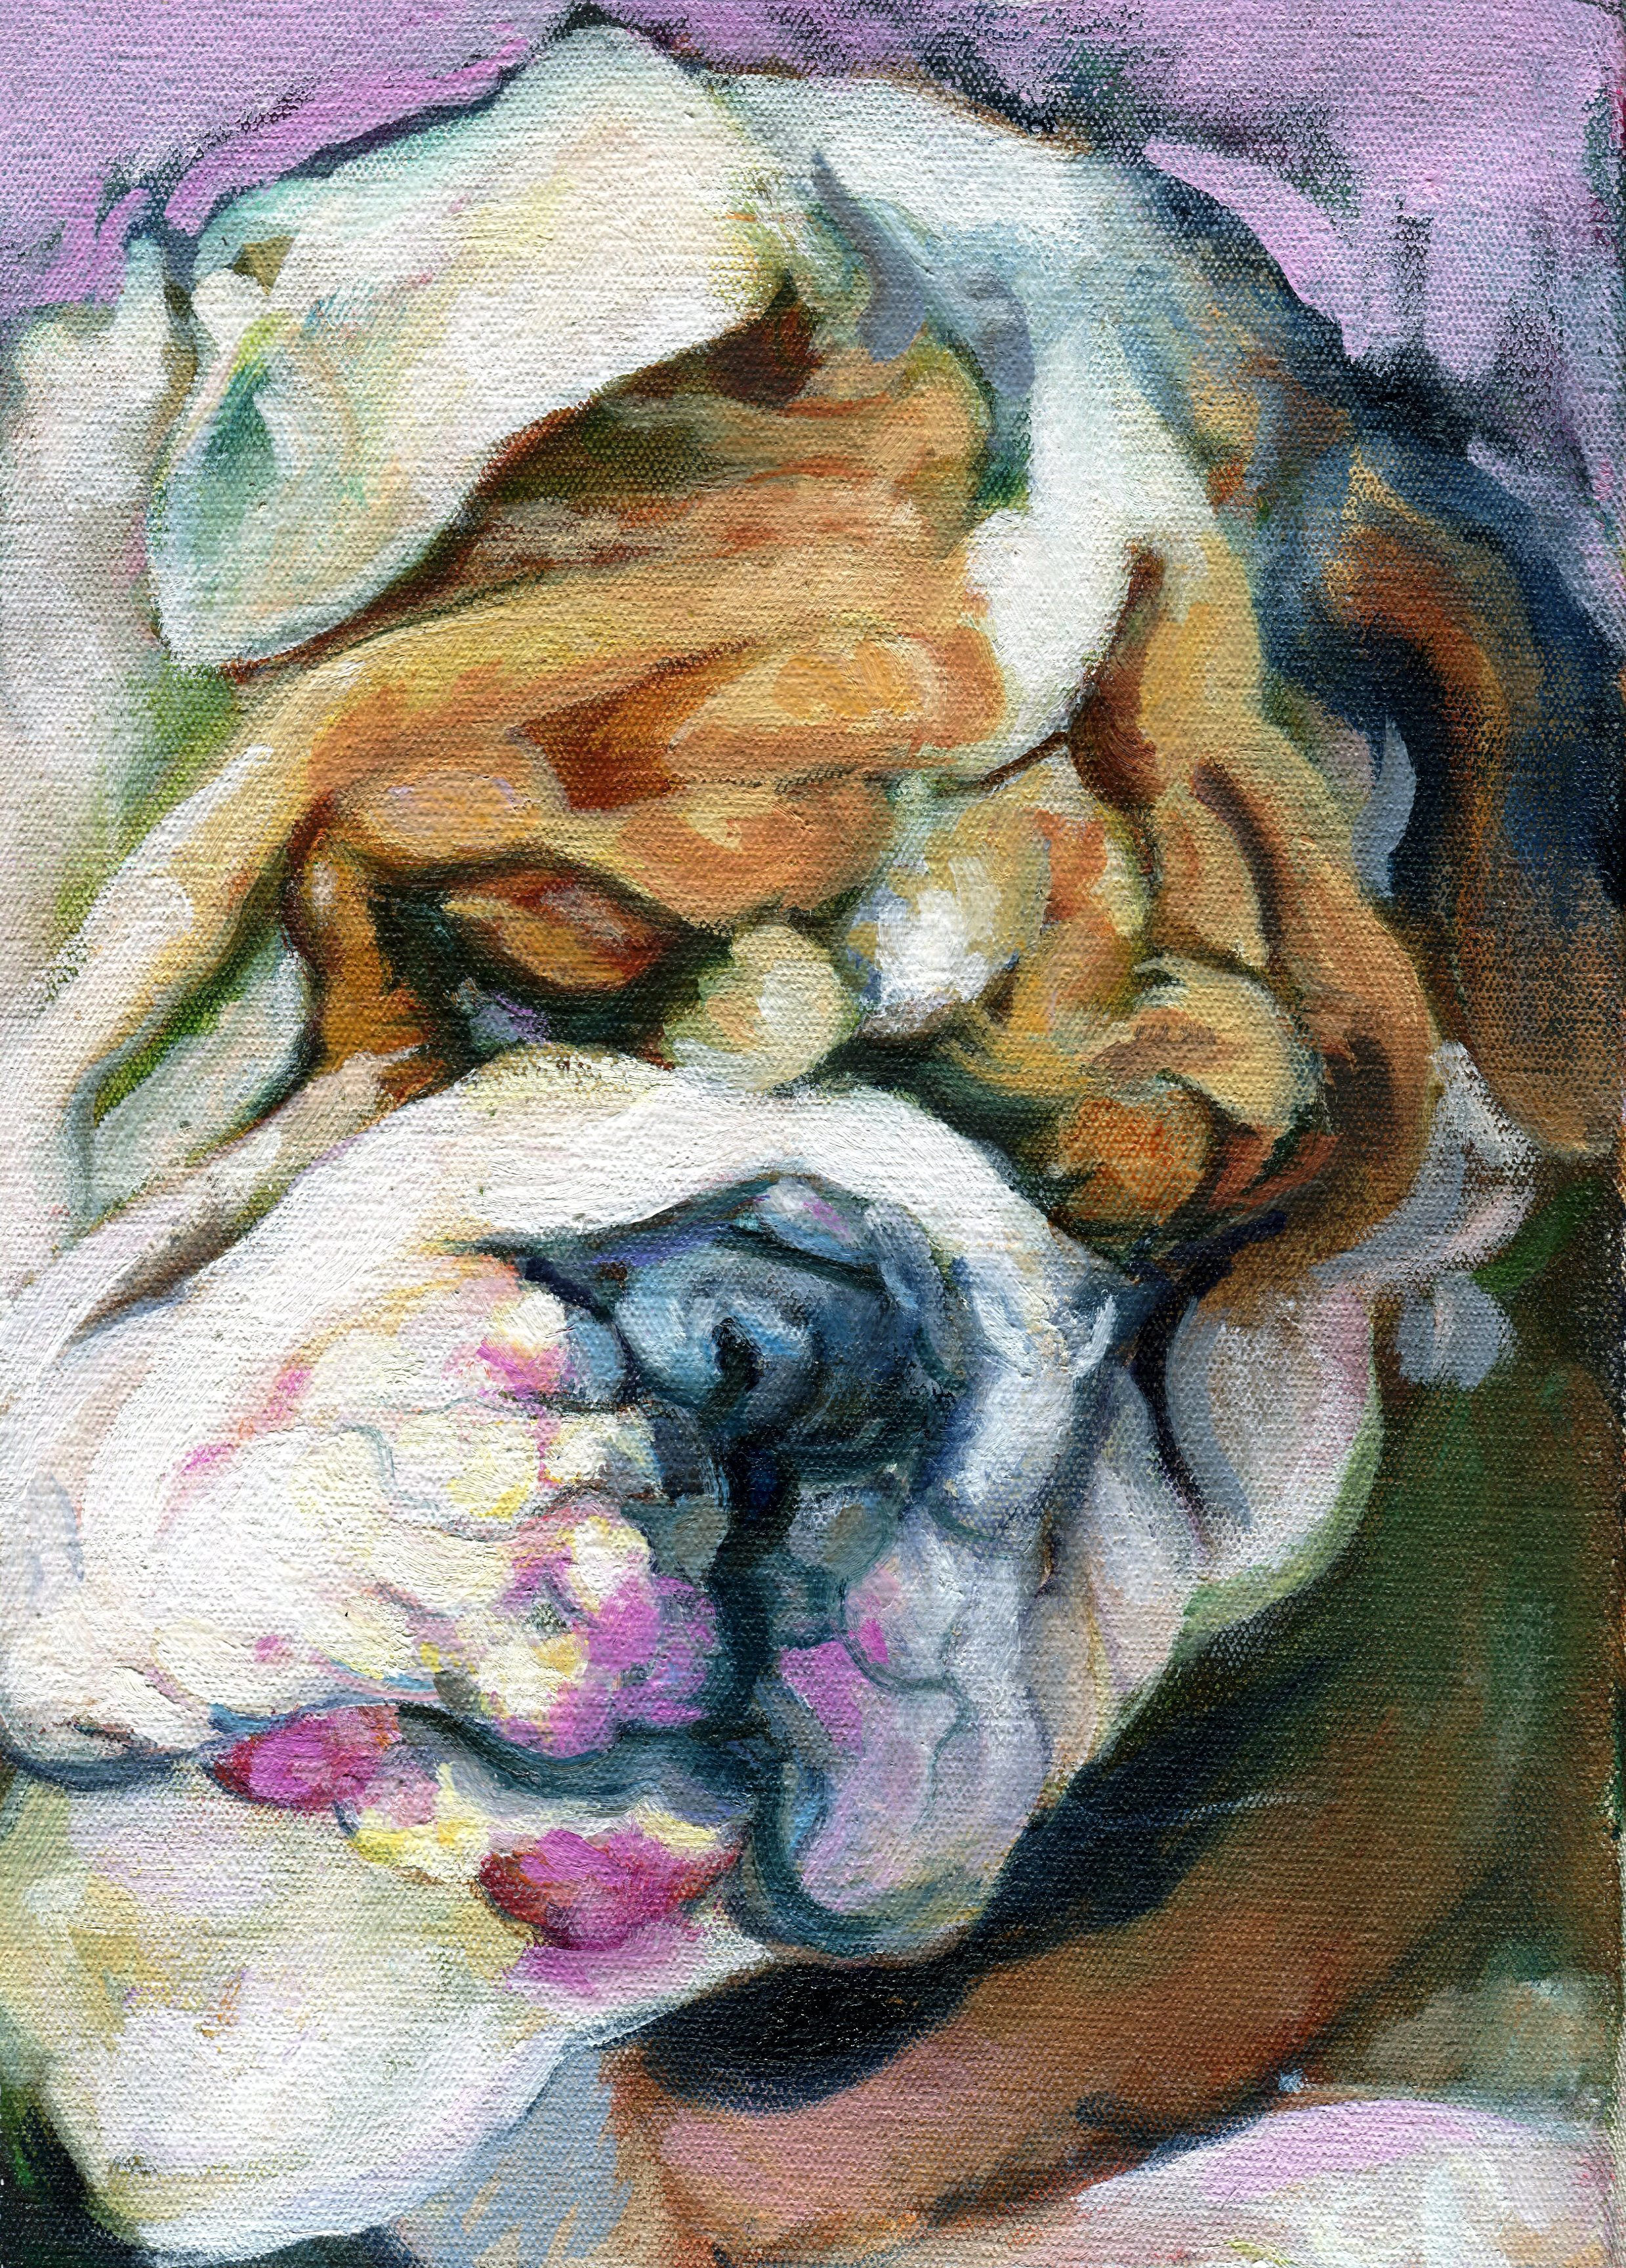 84B CATHERINE RAPHAEL, MY BULLY, OIL ON CANVAS